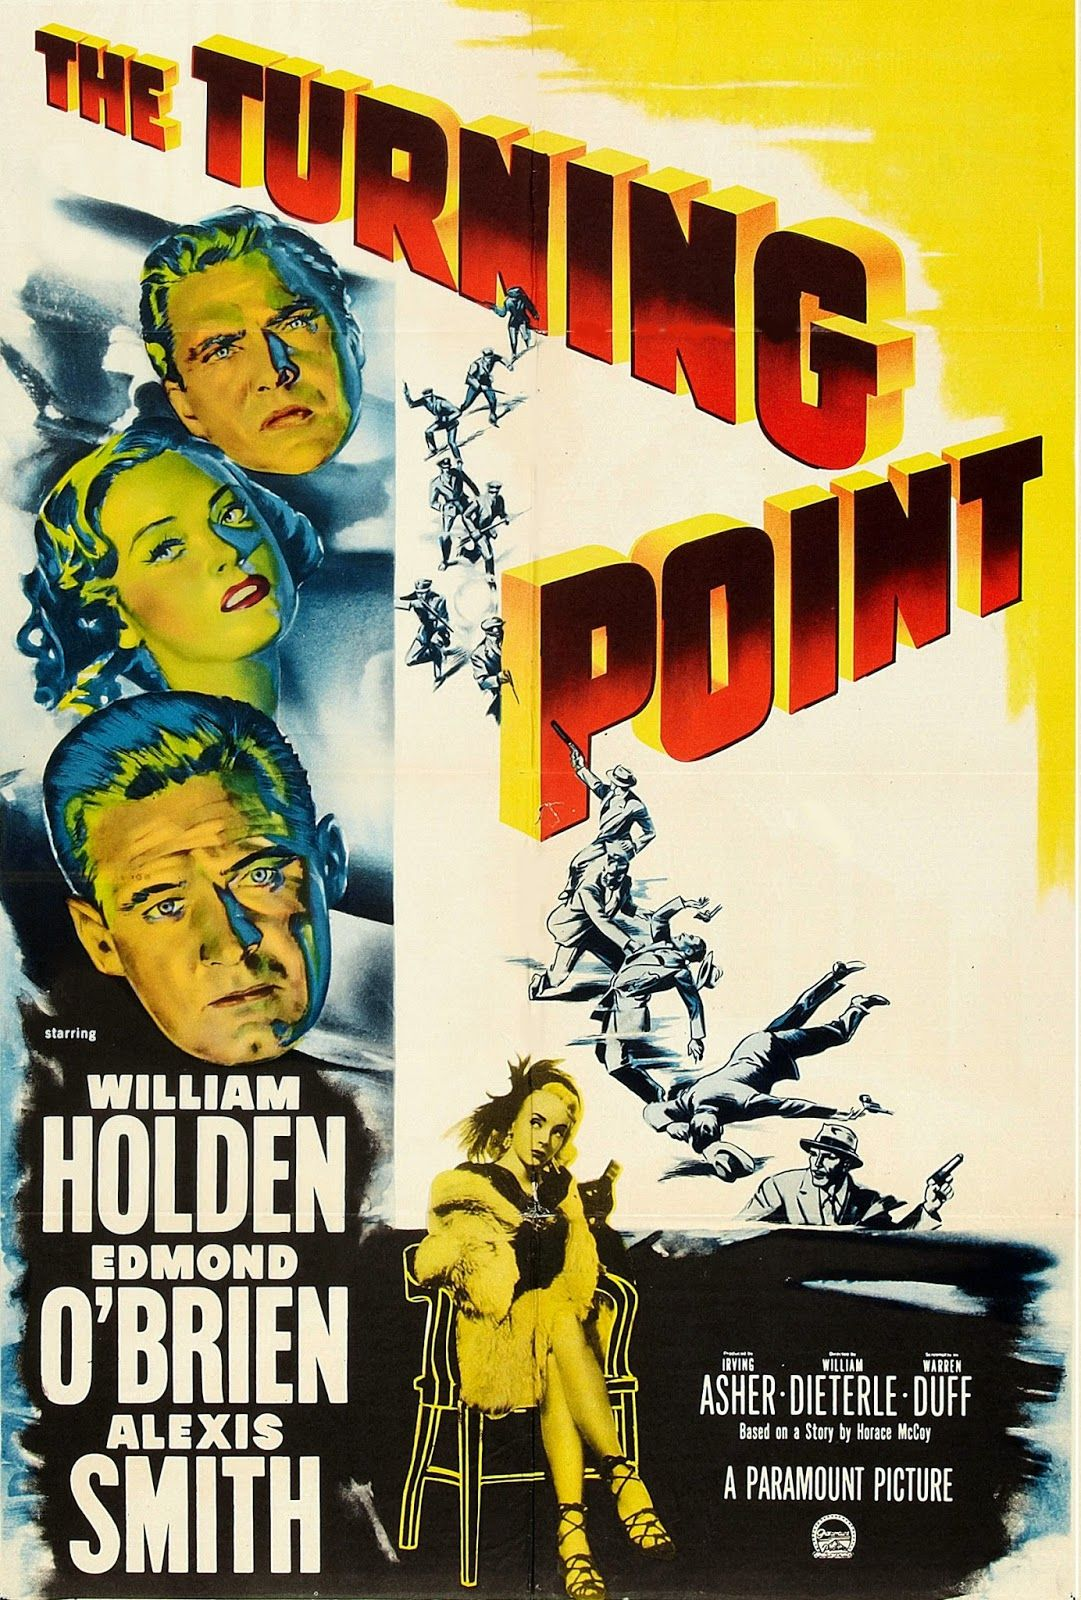 The Turning Point 1952 William Holden Edmond O Brien Alexis